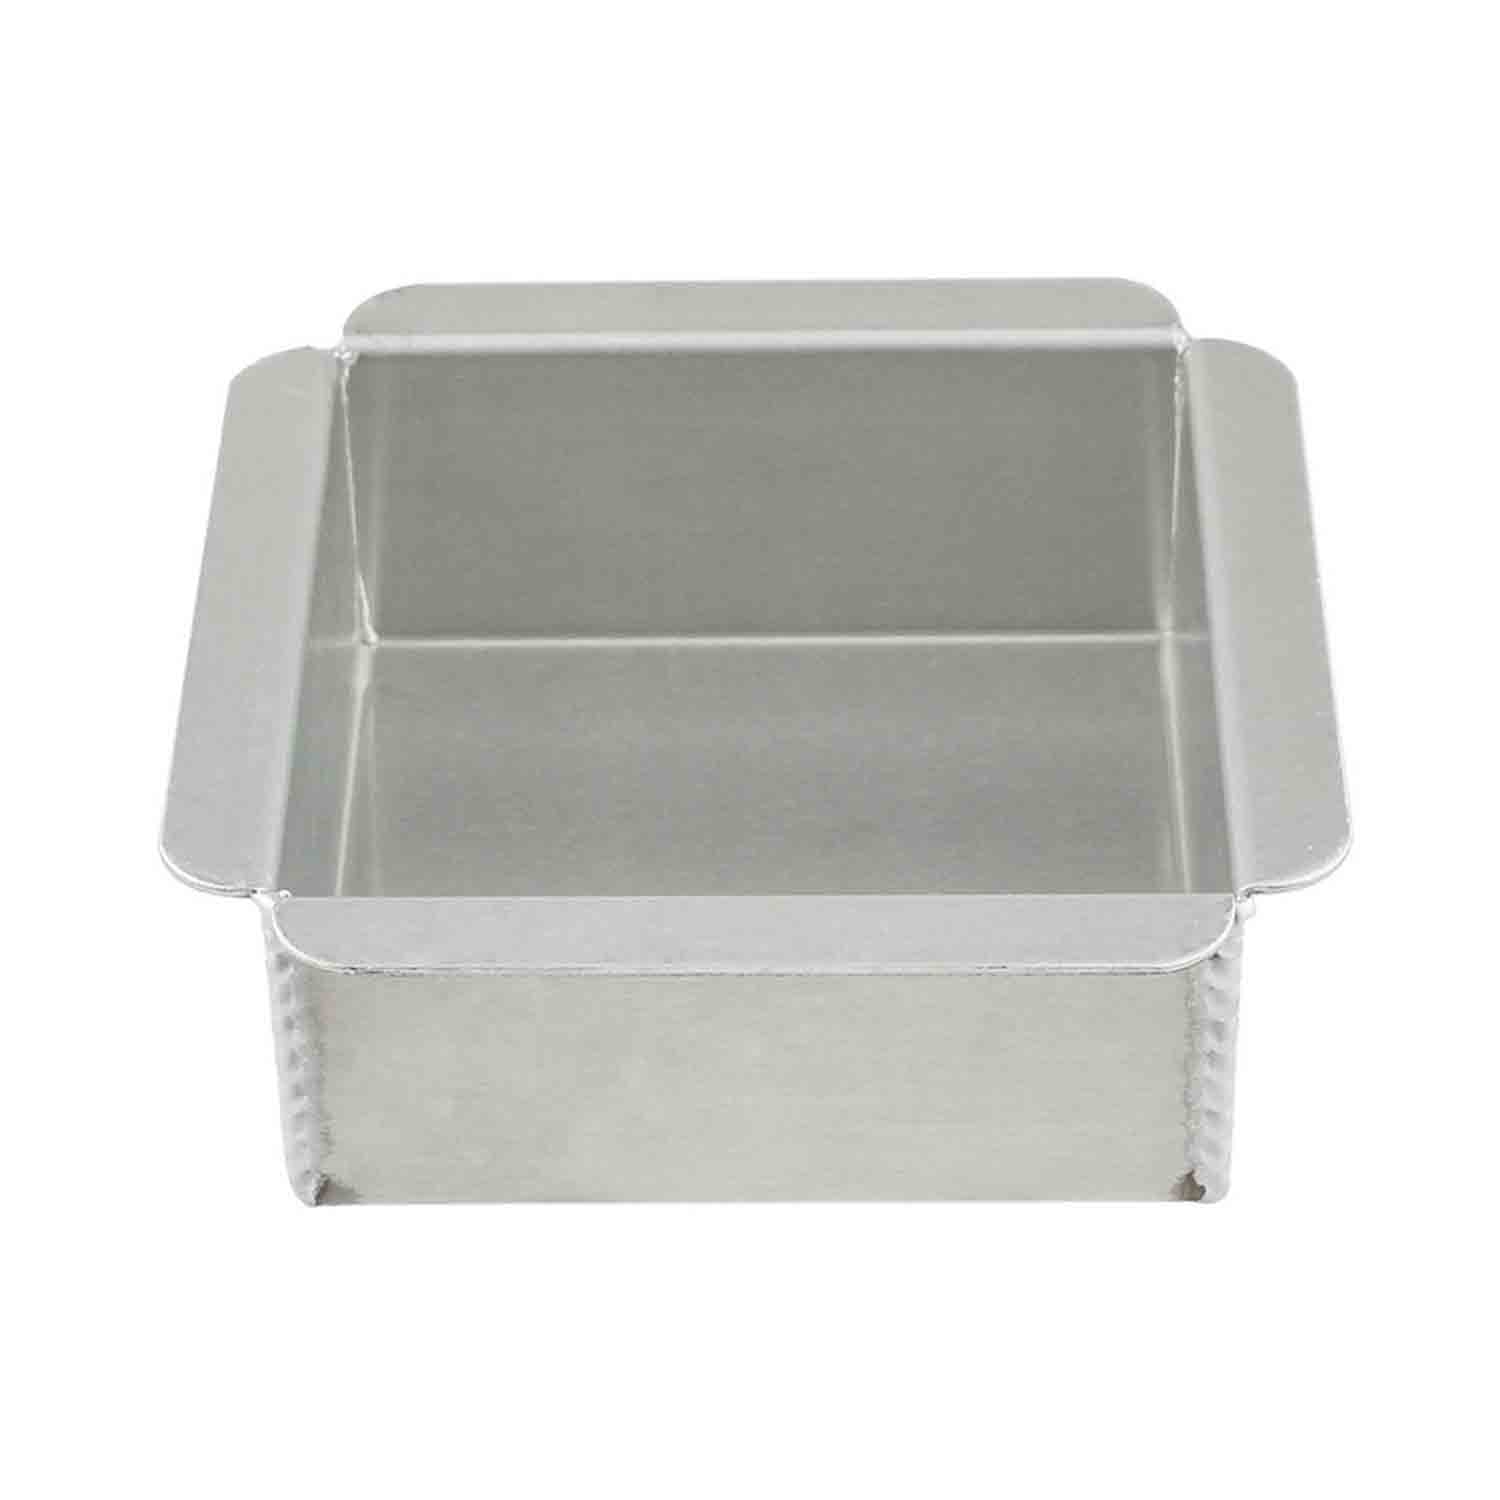 "4 1/2 x 2"" Magic Line Square Cake Pan"